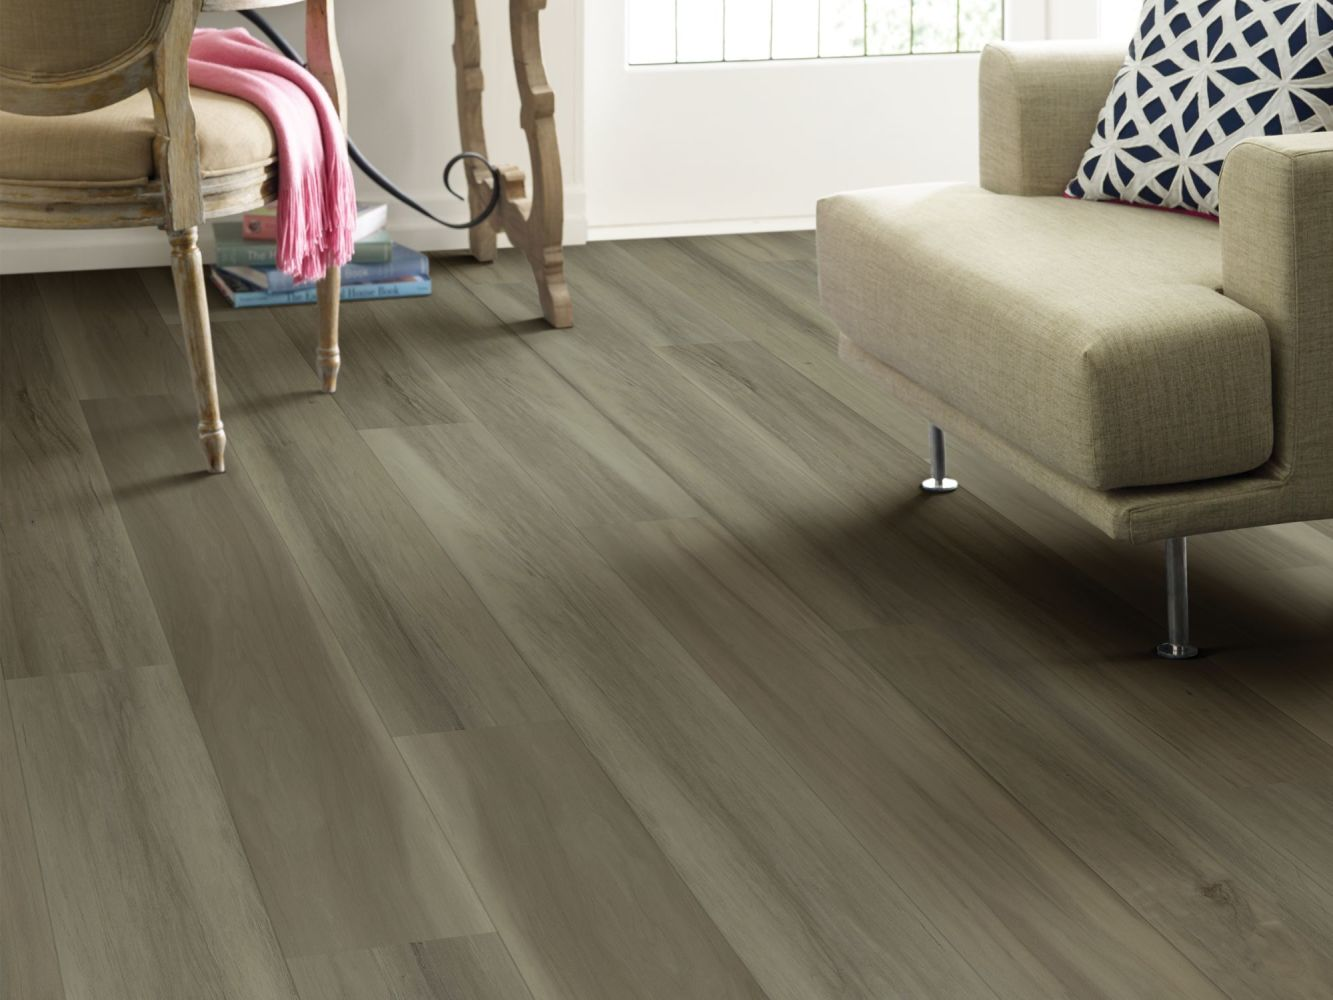 Shaw Floors SFA Adventure XL Hd+milled Harbor Gray 01046_701SA